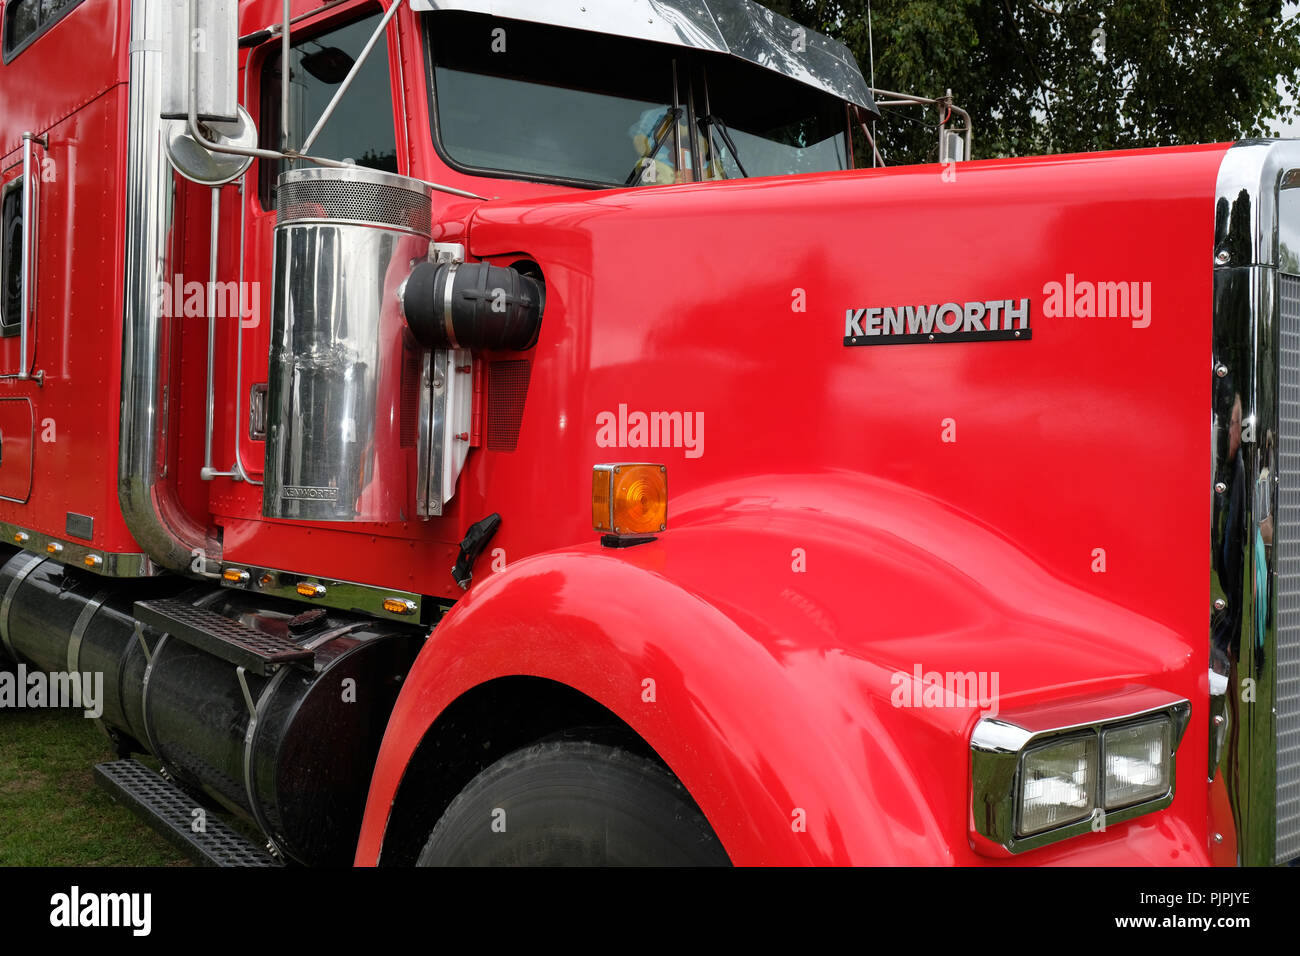 Kenworth is a global manufacturer of medium and heavy-duty Class 8 trucks - Stock Image